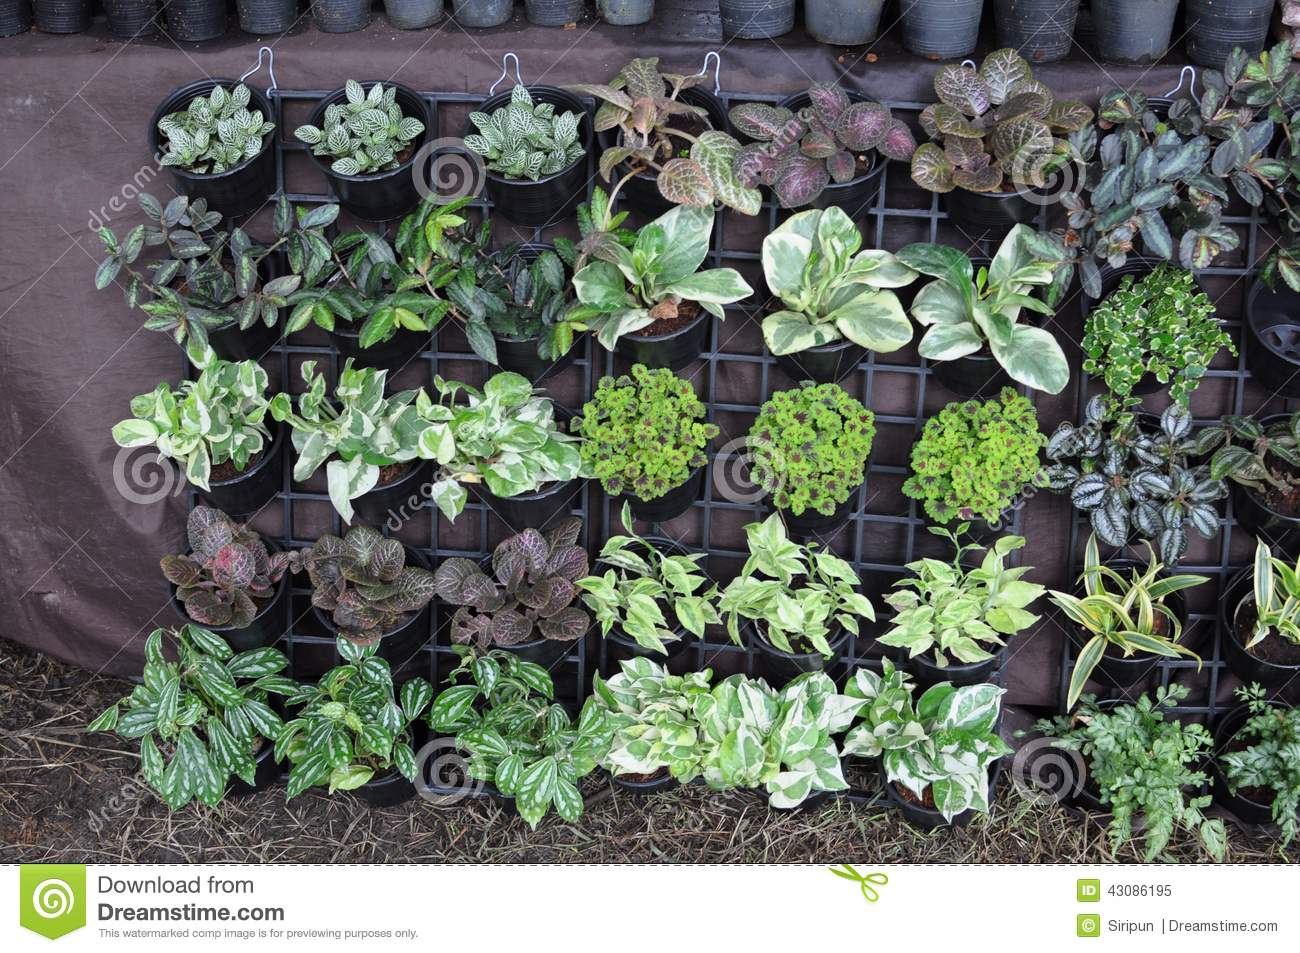 Garden plants for sale stock photo image 43086195 - Flowers planted may complete garden ...